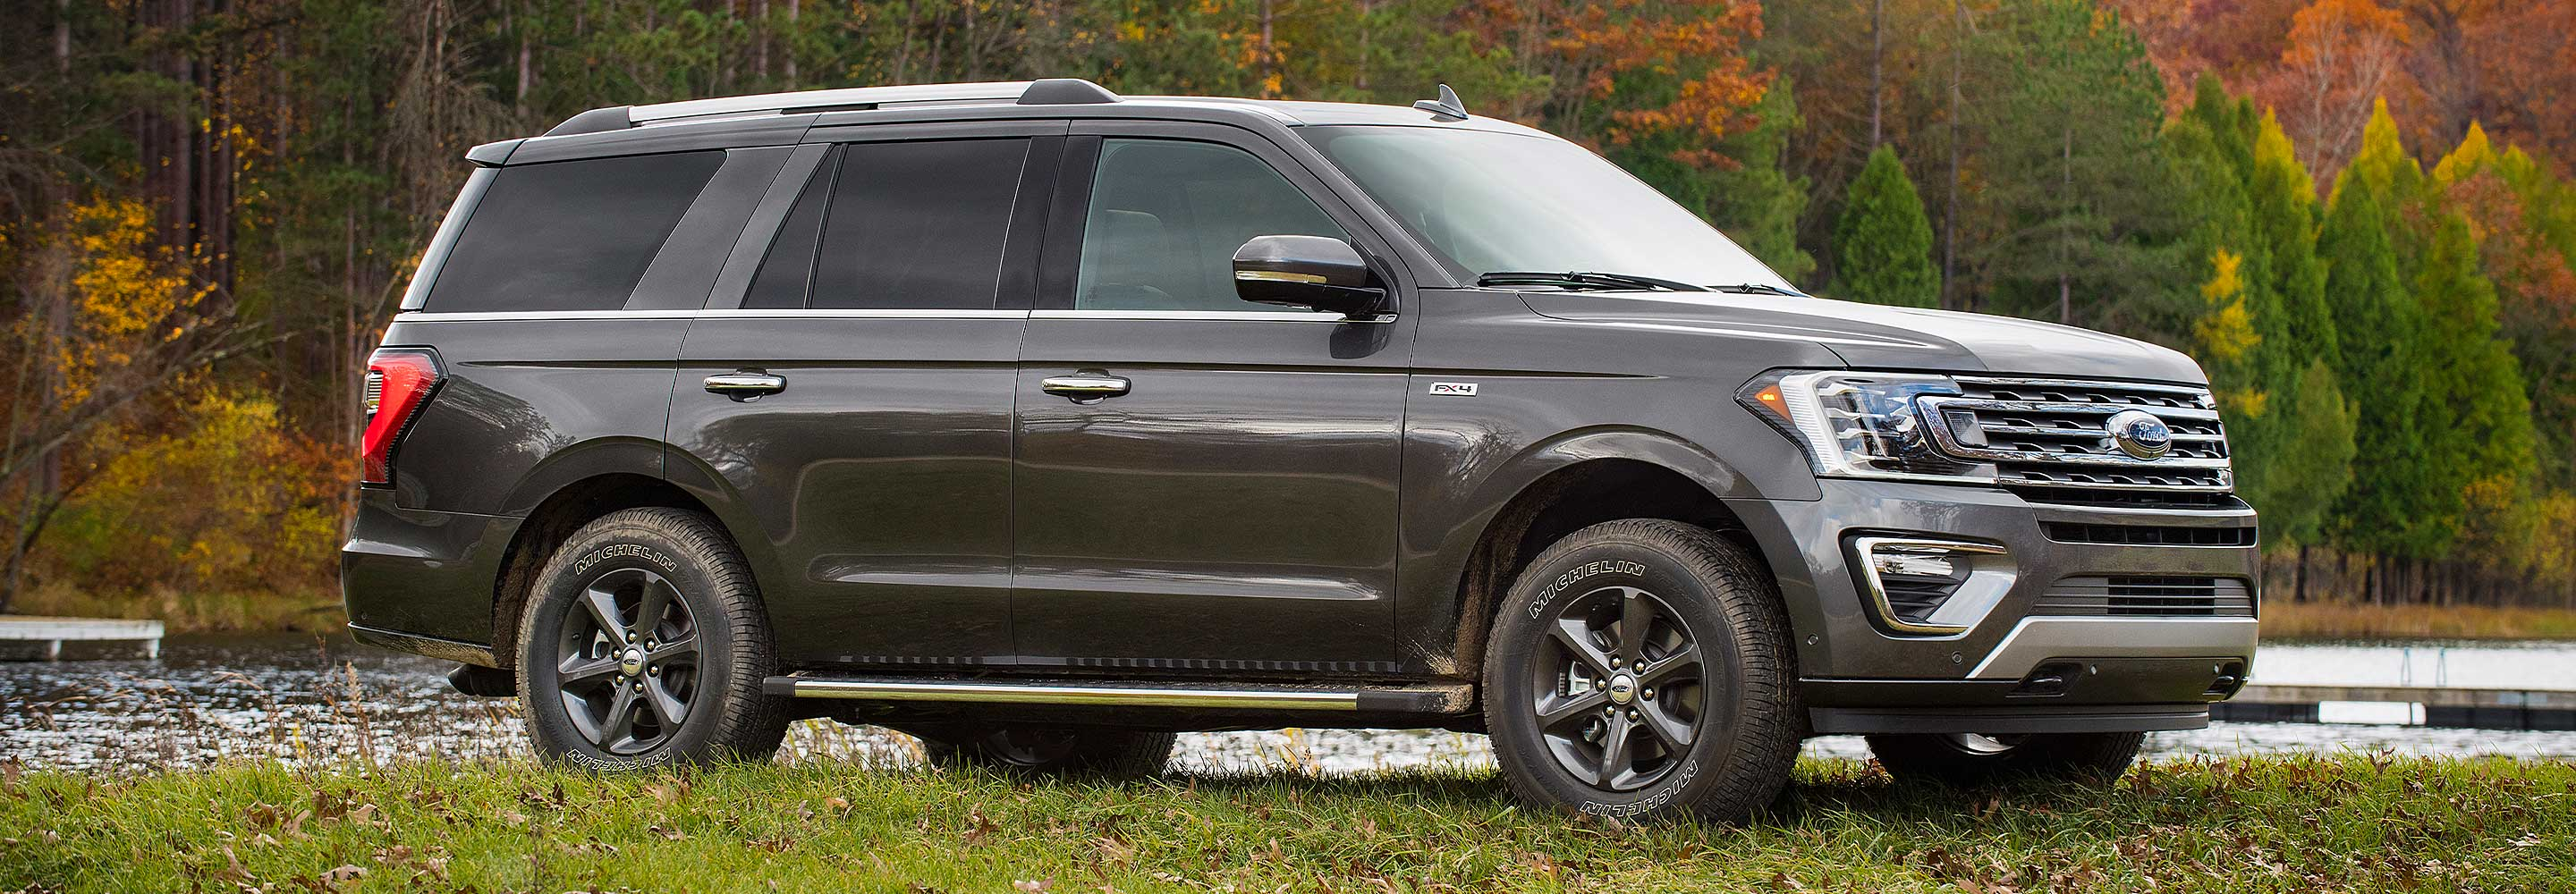 What's Included in the 2020 Ford Expedition Limited Off-Road Package